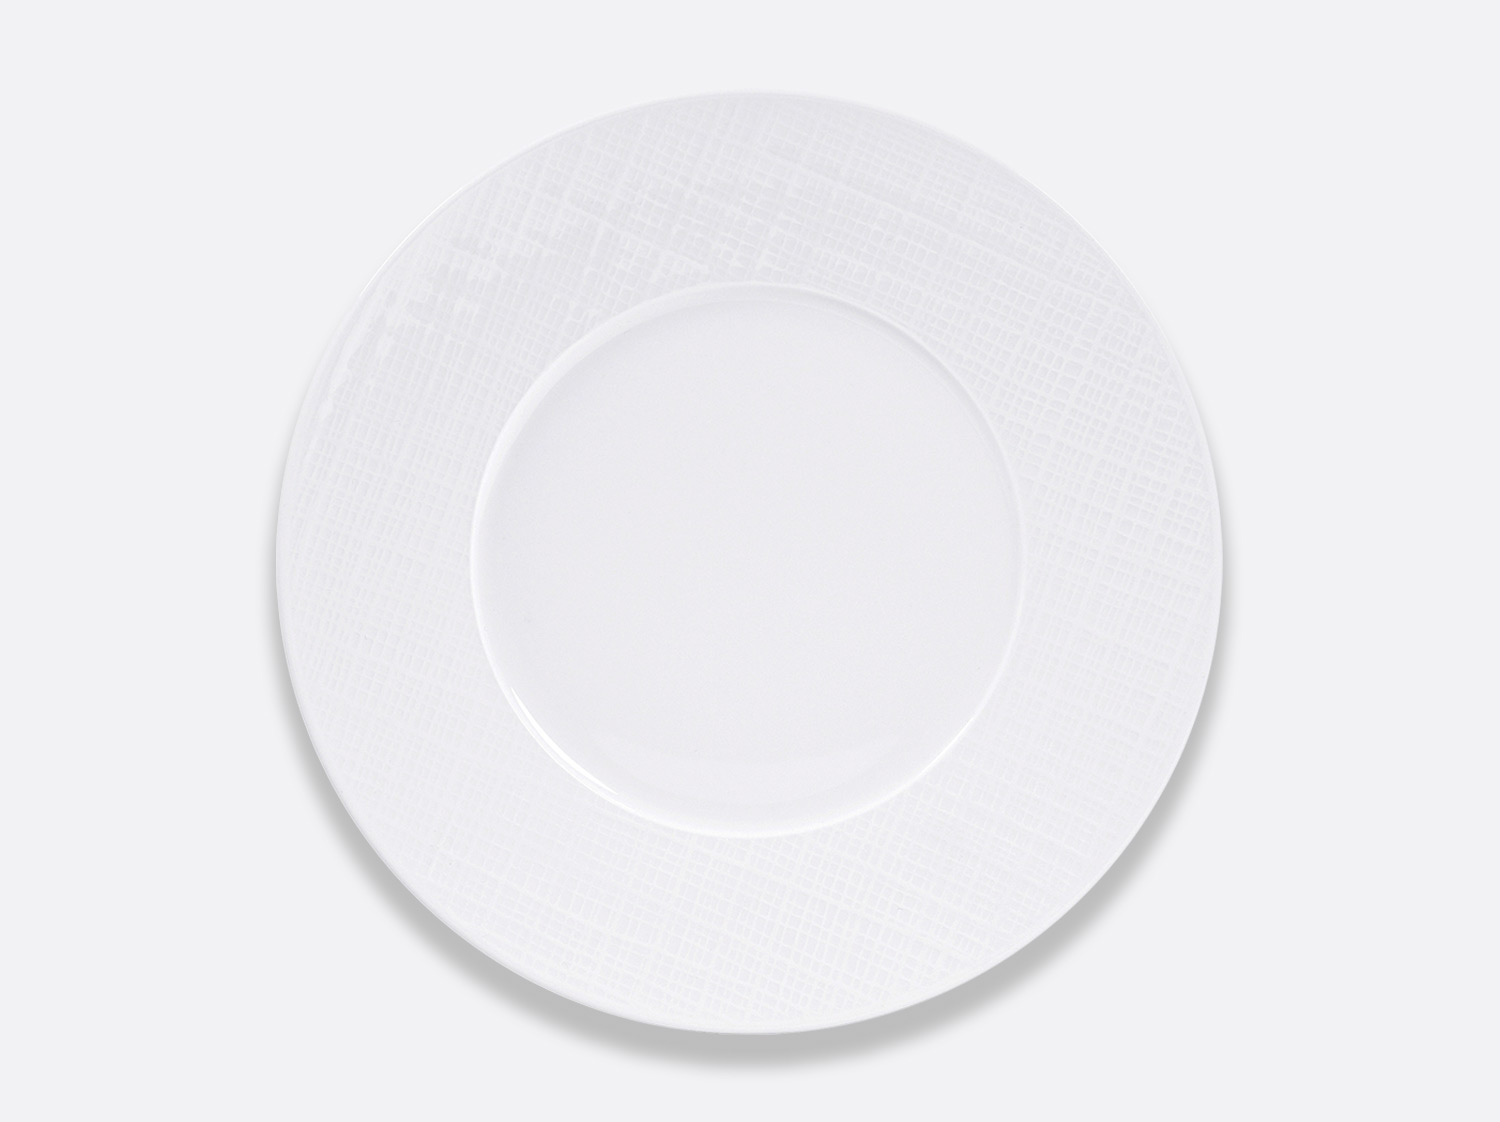 Assiette plate 29,5 cm en porcelaine de la collection ORGANZA BLANC Bernardaud